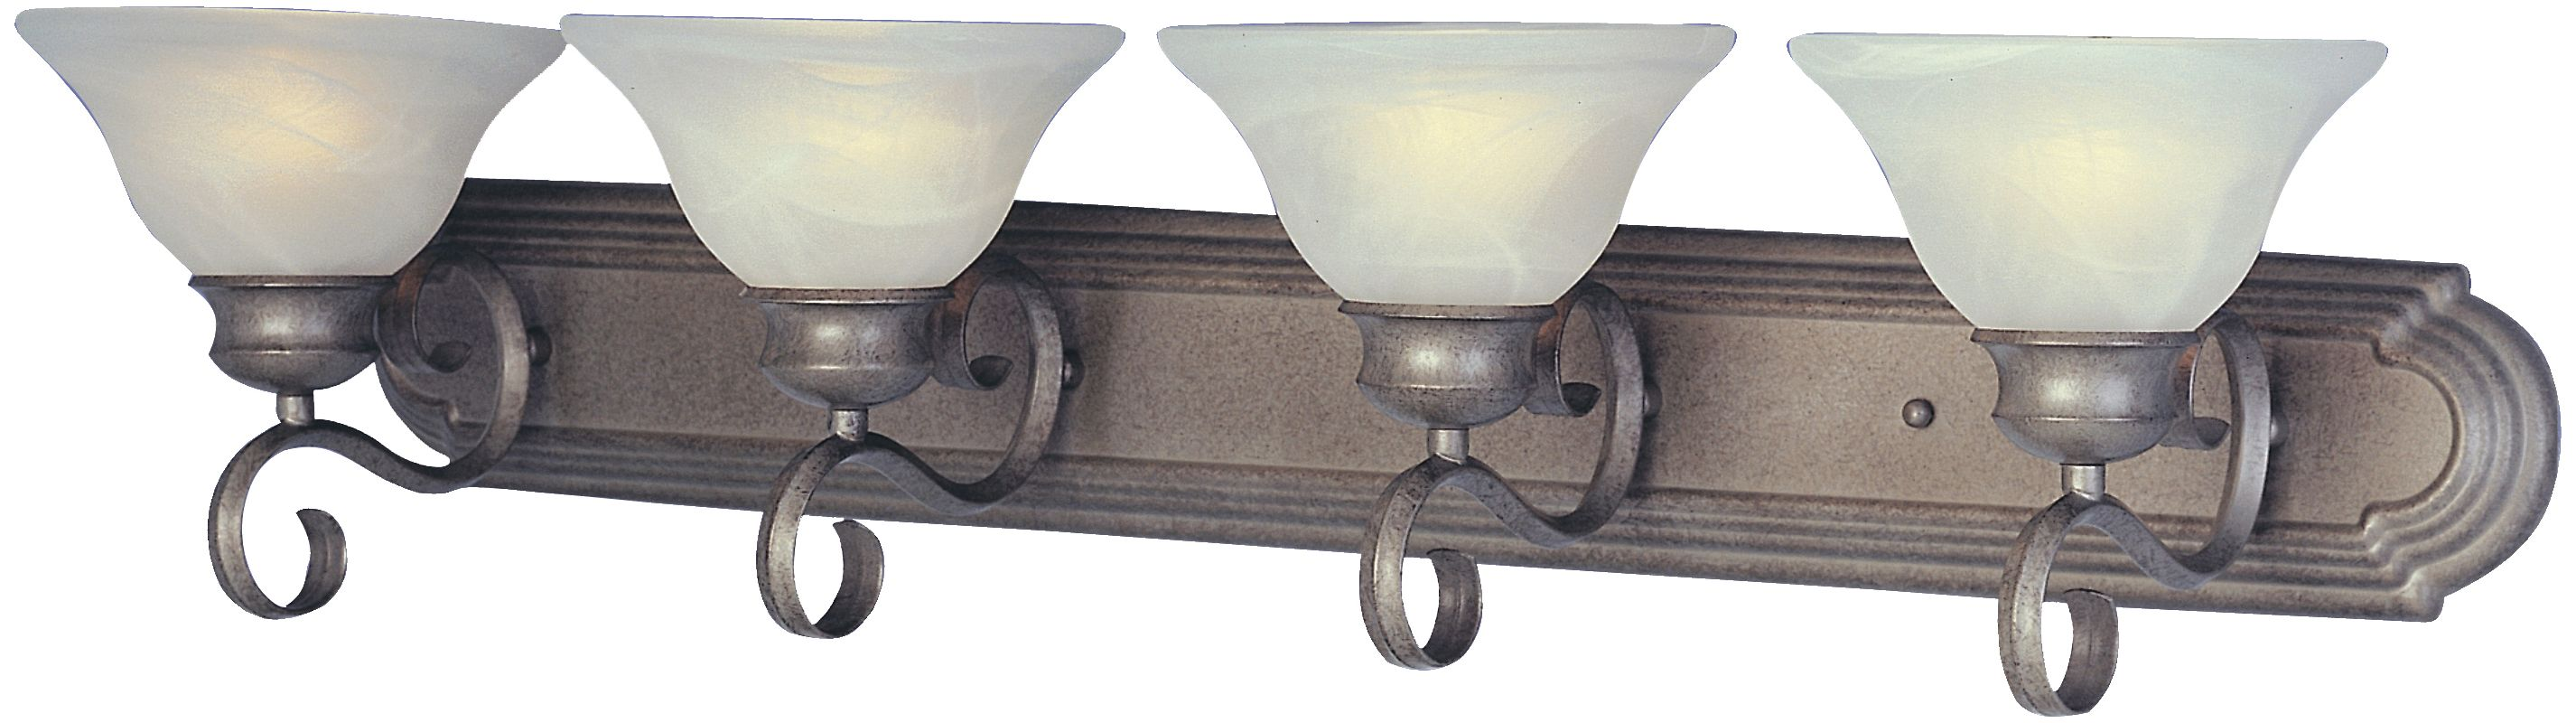 """Maxim 8024 4 Light 36"""" Wide Bathroom Fixture from the Pacific"""